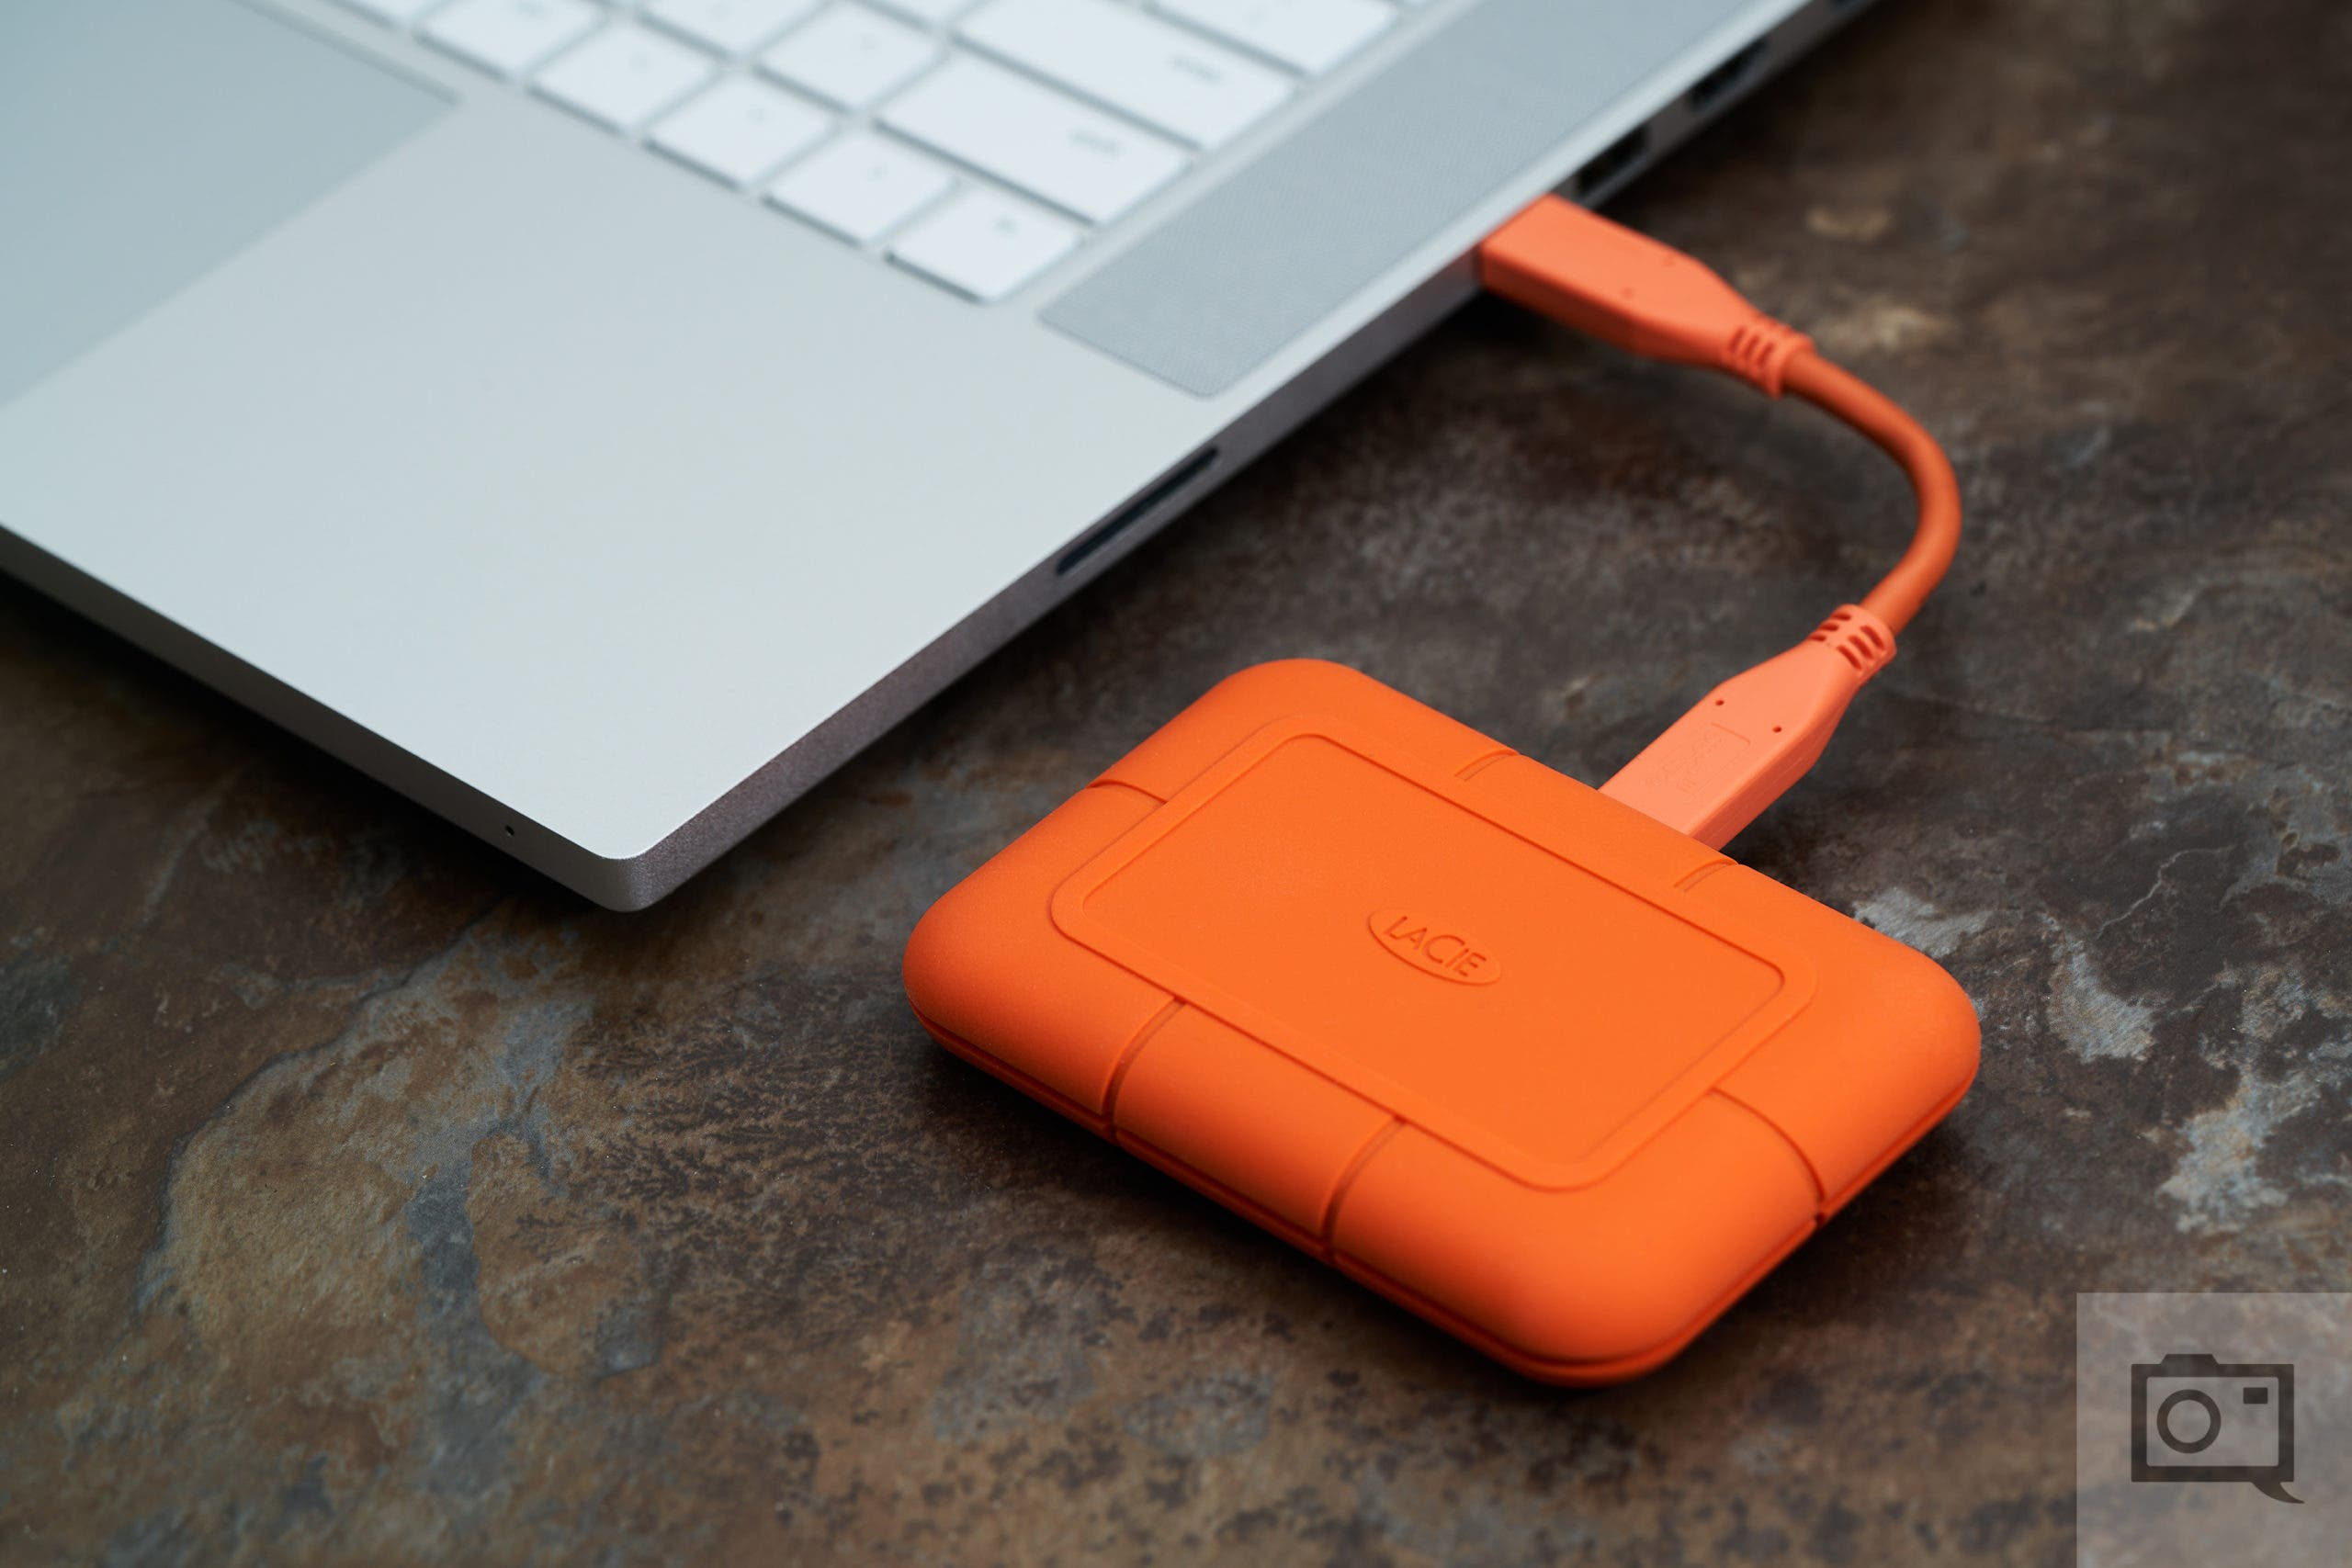 Peripheral Review: LaCie Rugged SSD (For Photographers On The Go)